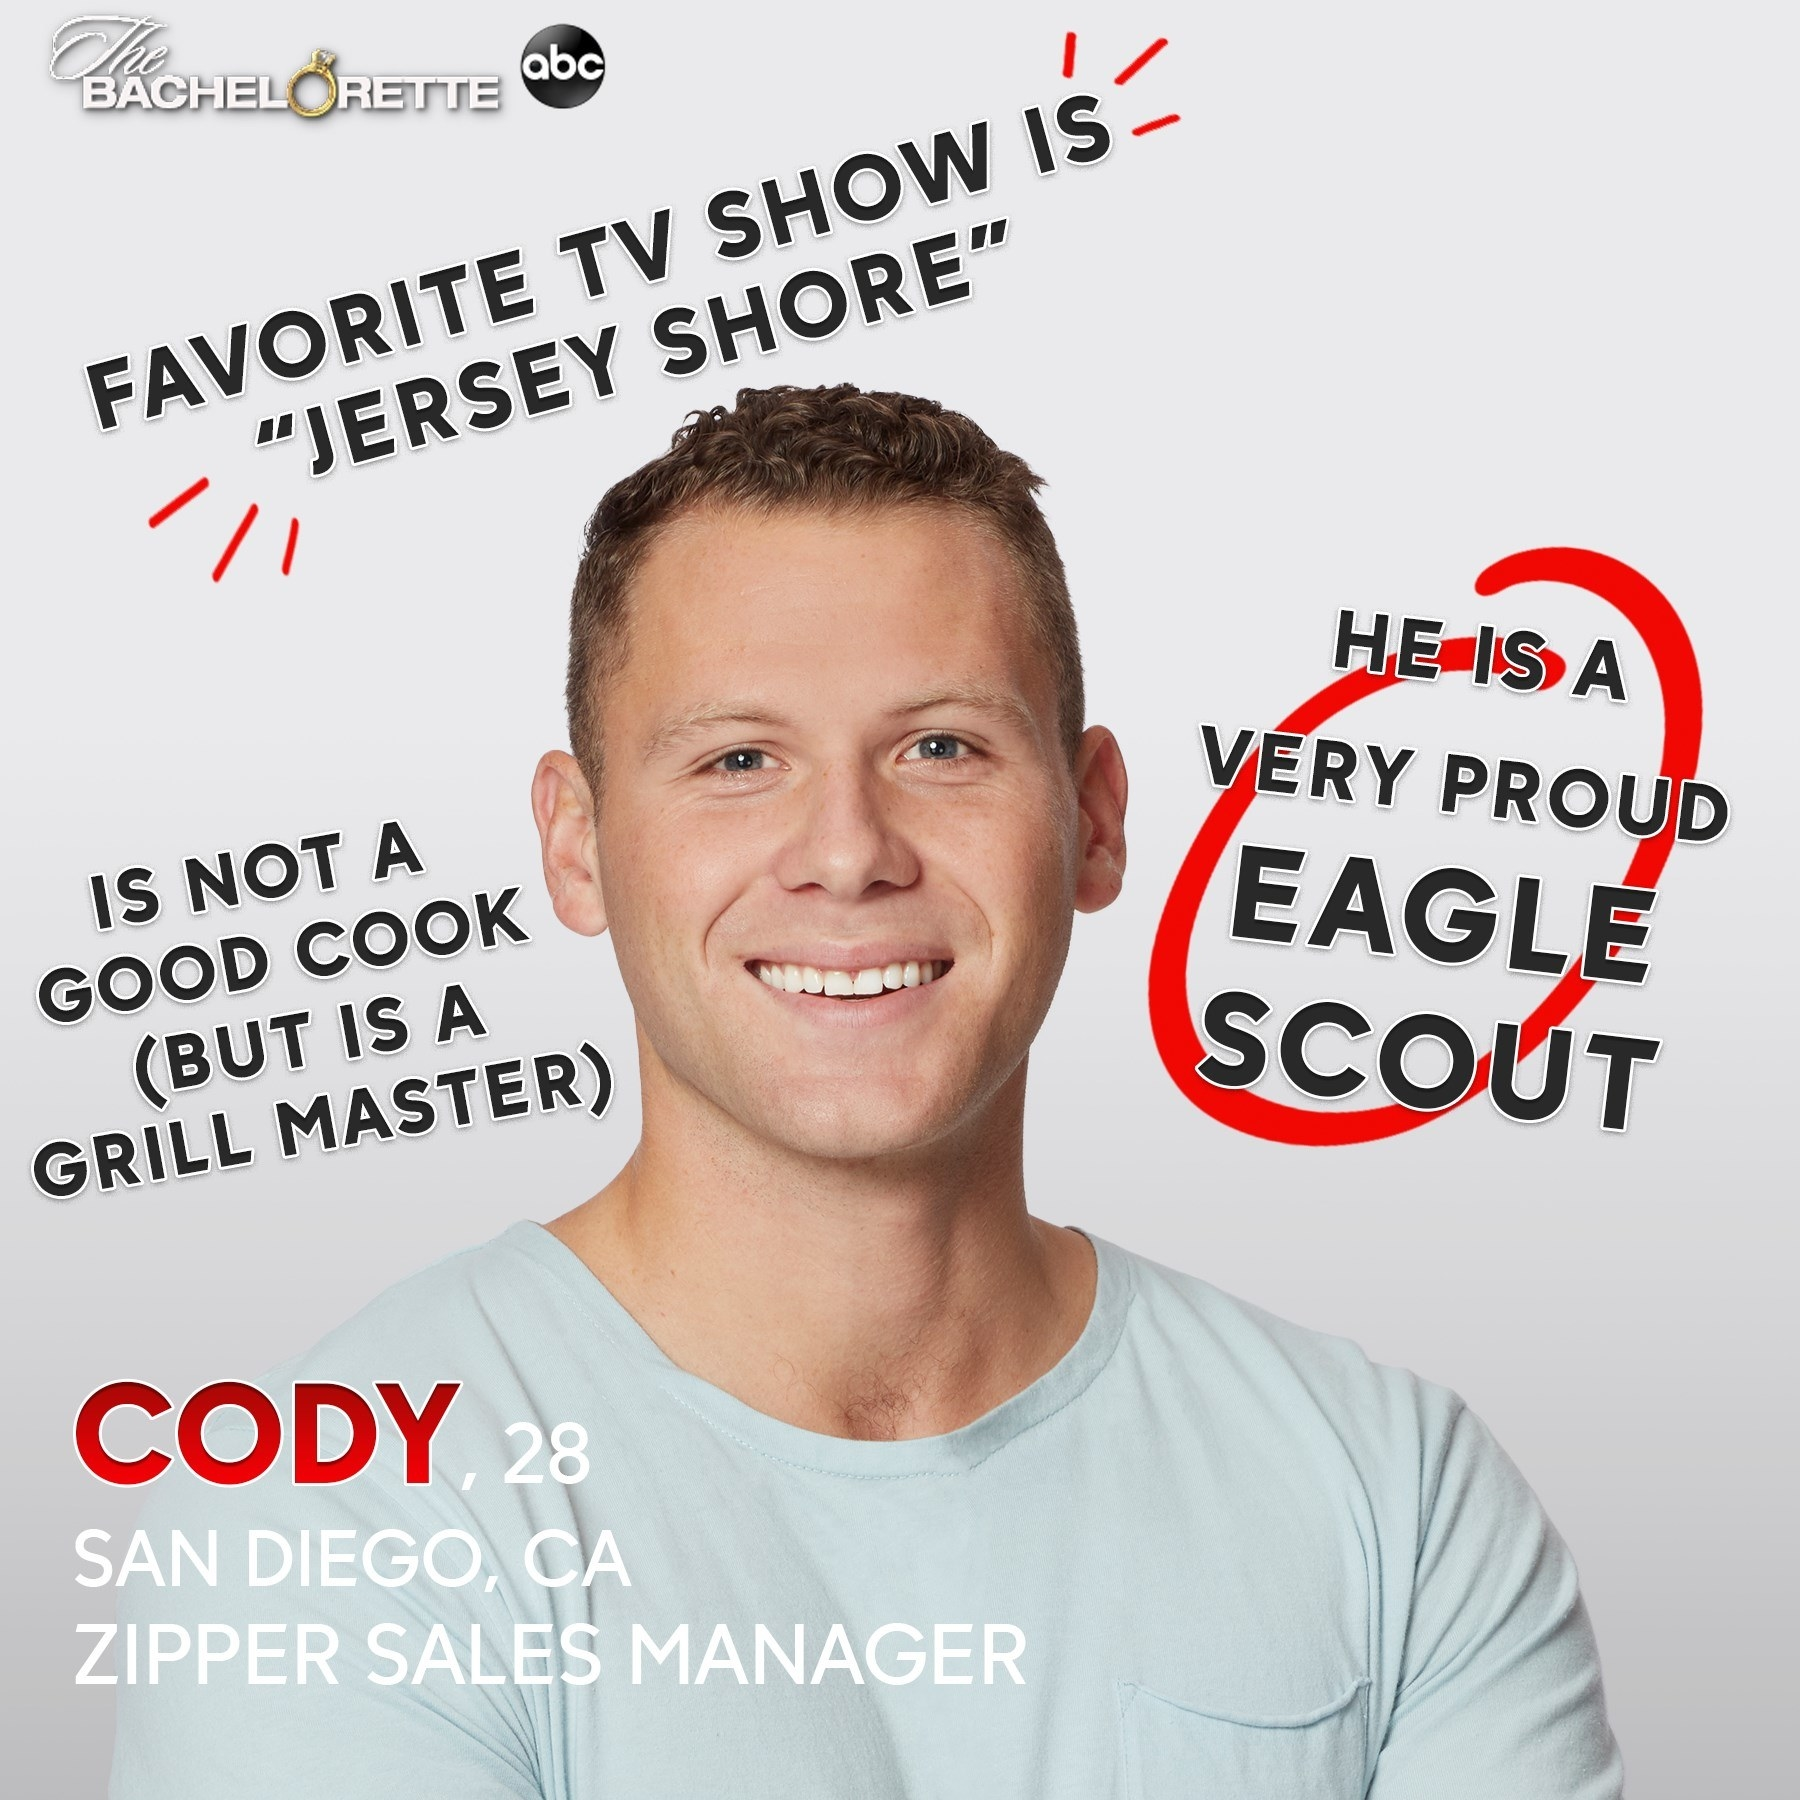 """A zipper sales manager who is a good grill master and who loves """"Jersey Shore"""""""